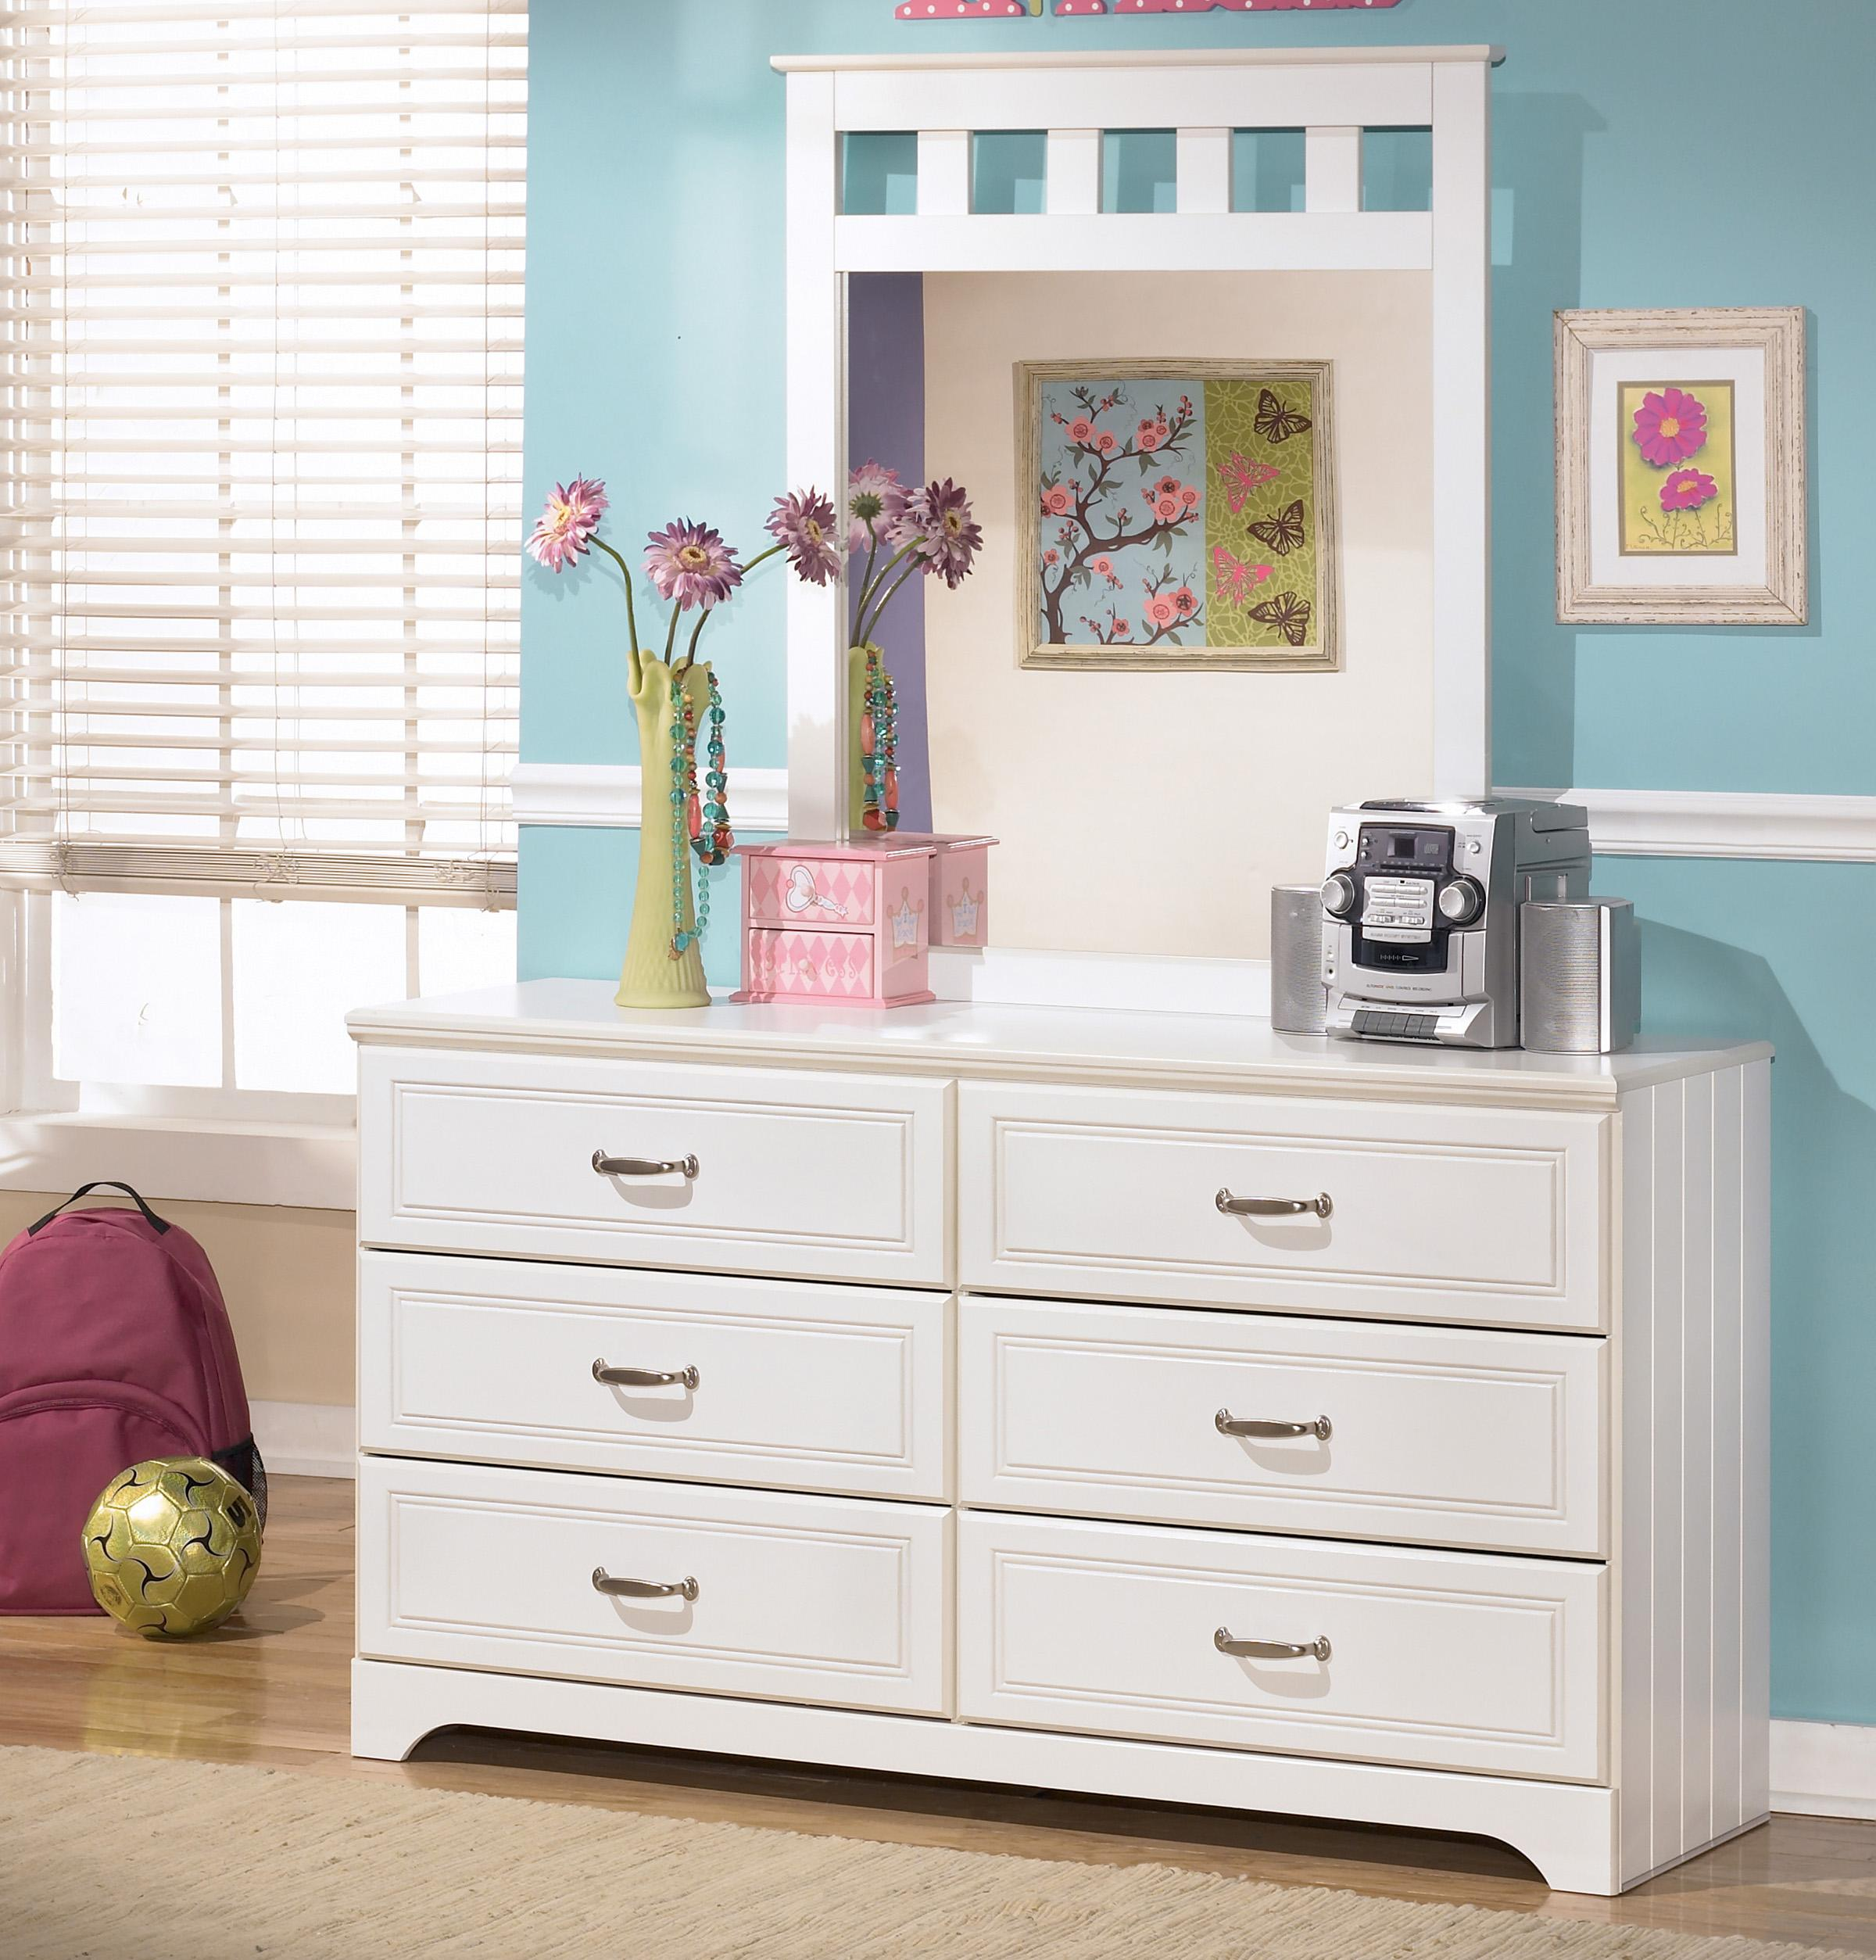 Lulu Dresser and Mirror Combo by Signature Design by Ashley at Zak's Warehouse Clearance Center